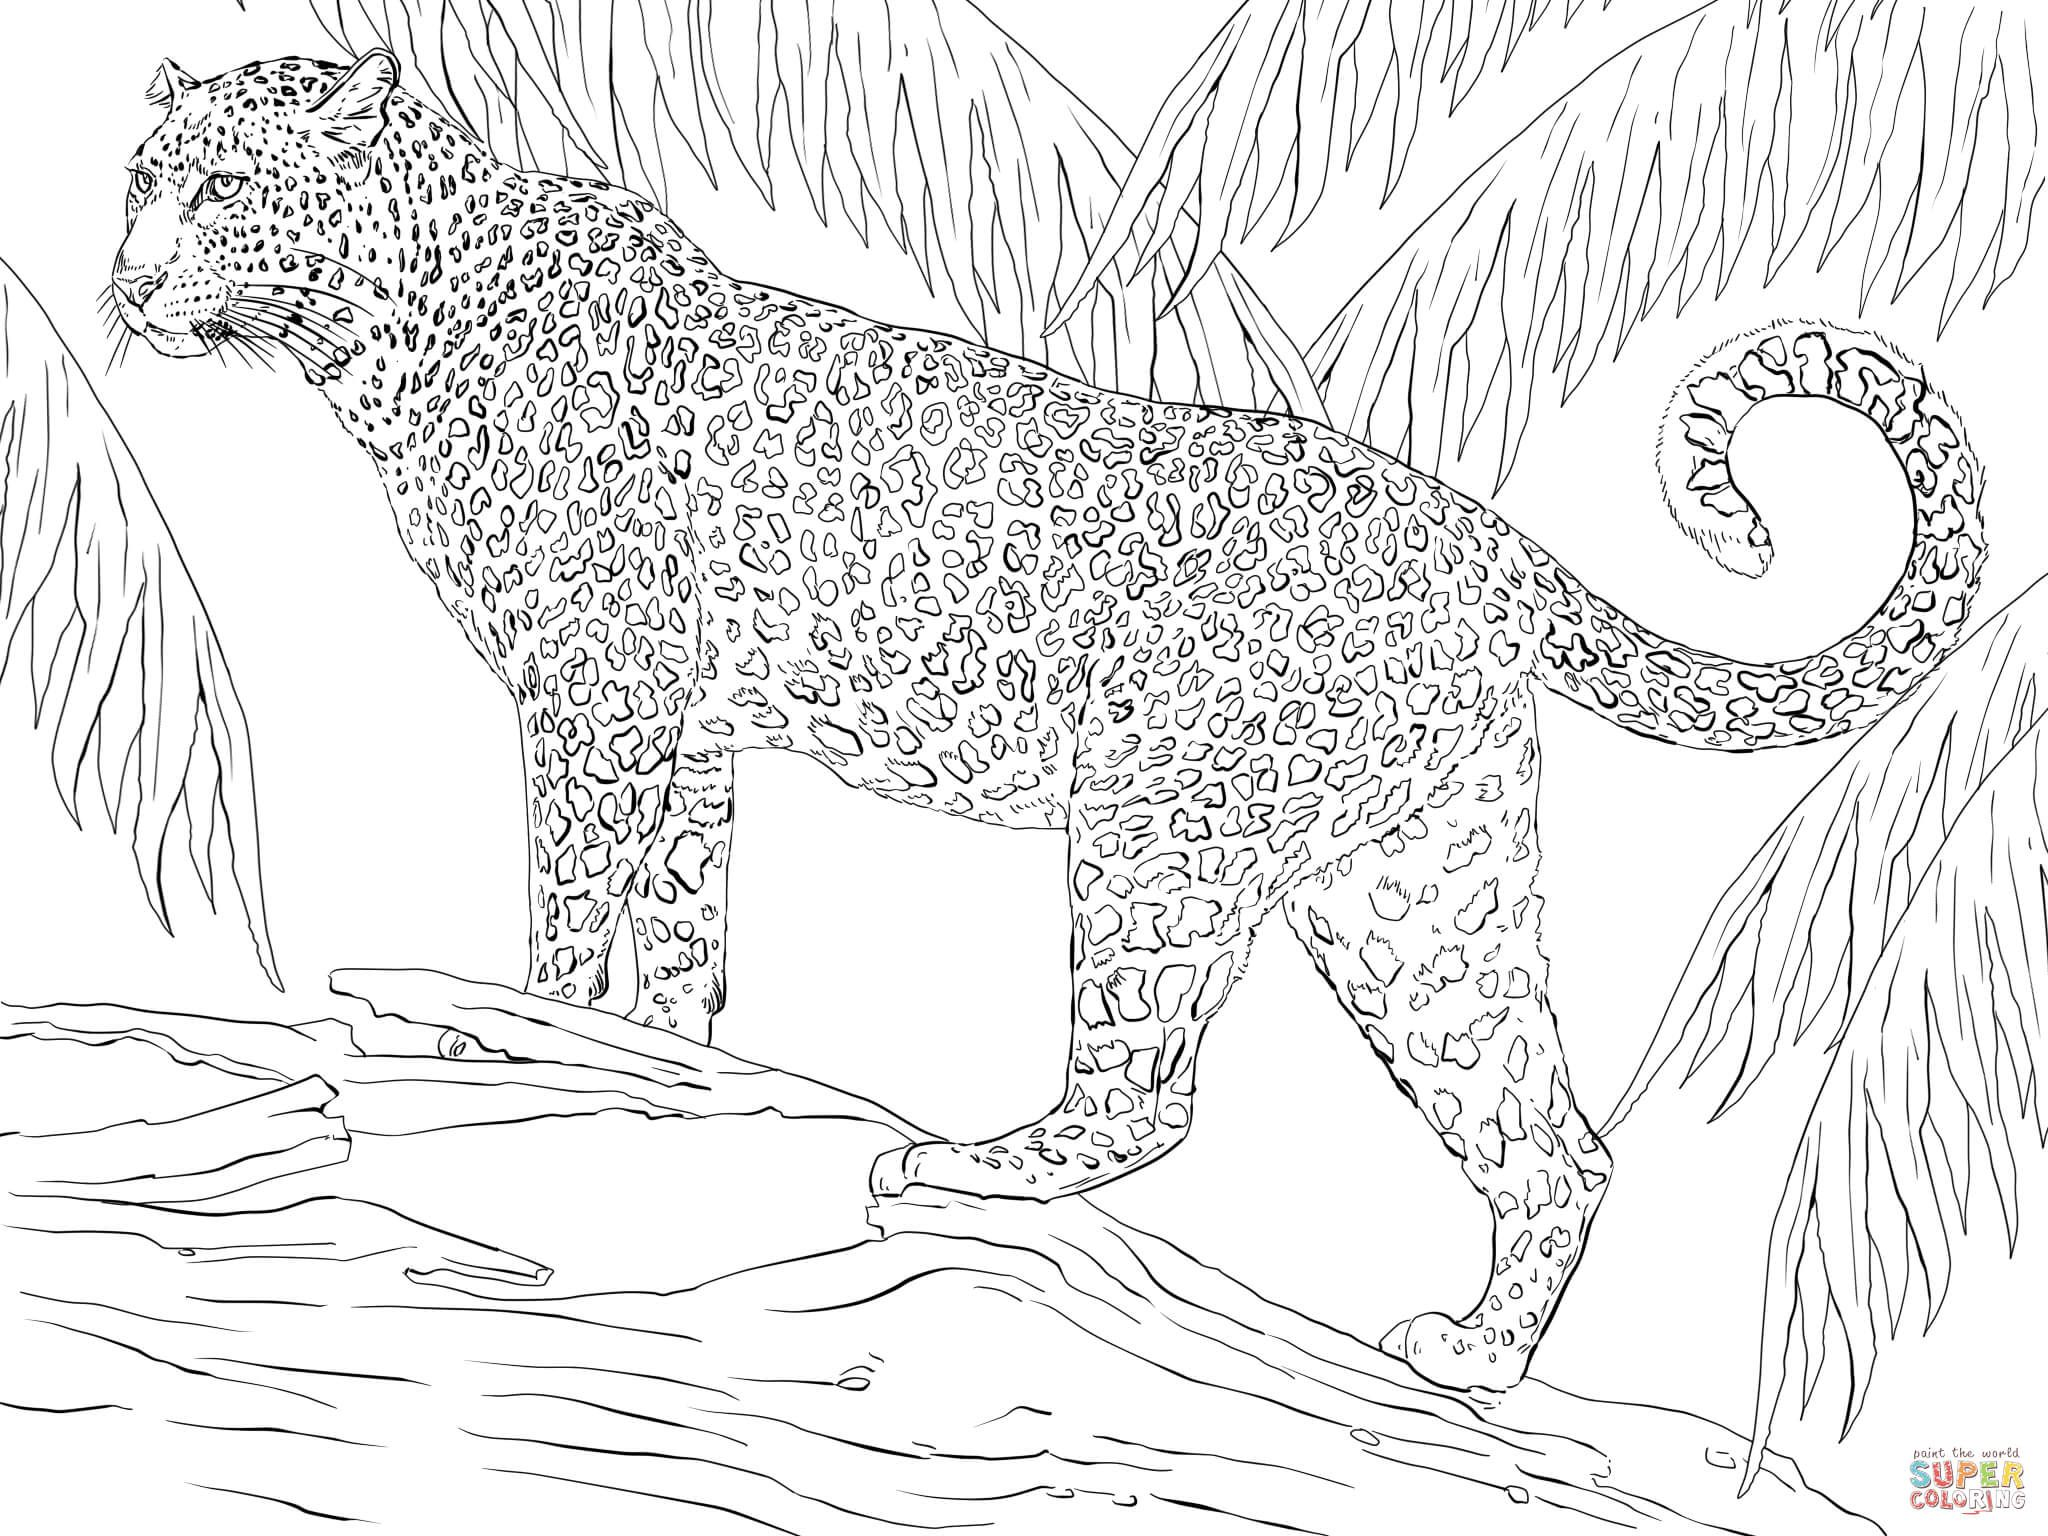 Pin By Stefanie Palmer On Images Cats Big Spotted Zoo Animal Coloring Pages Animal Coloring Pages Coloring Pages